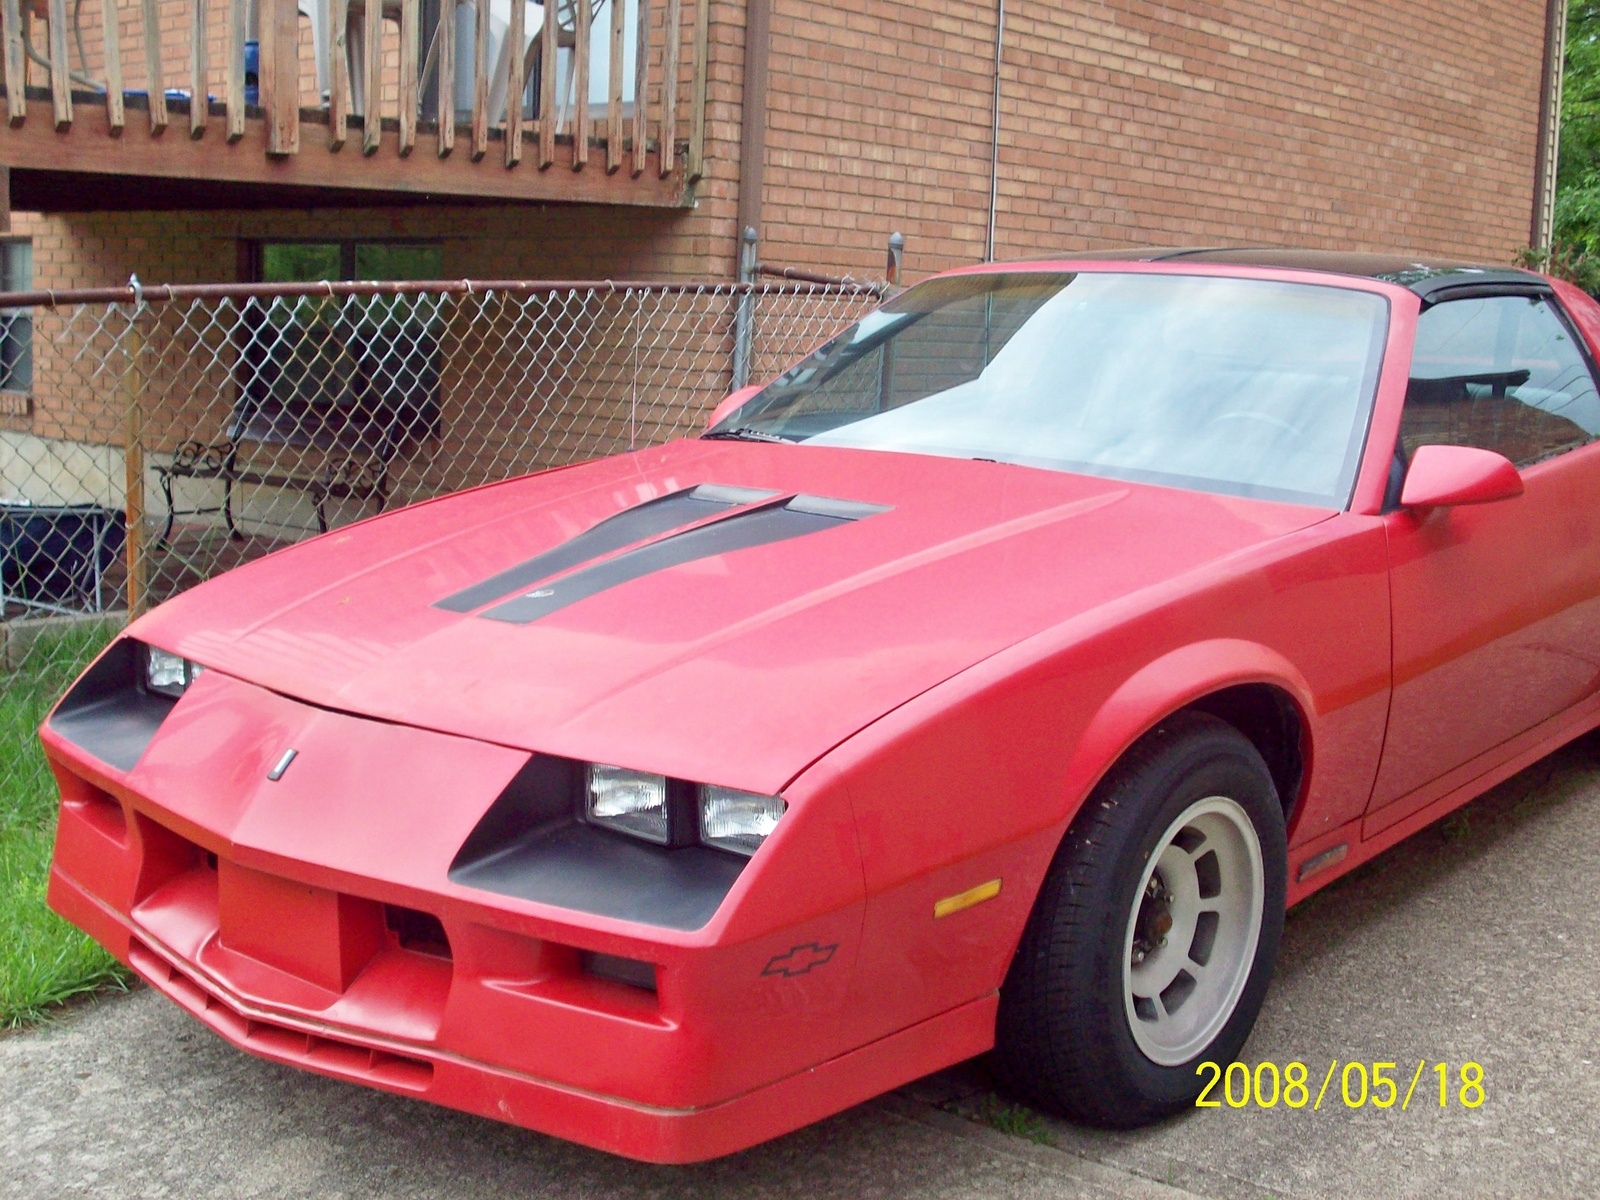 1983 Chevrolet Camaro picture